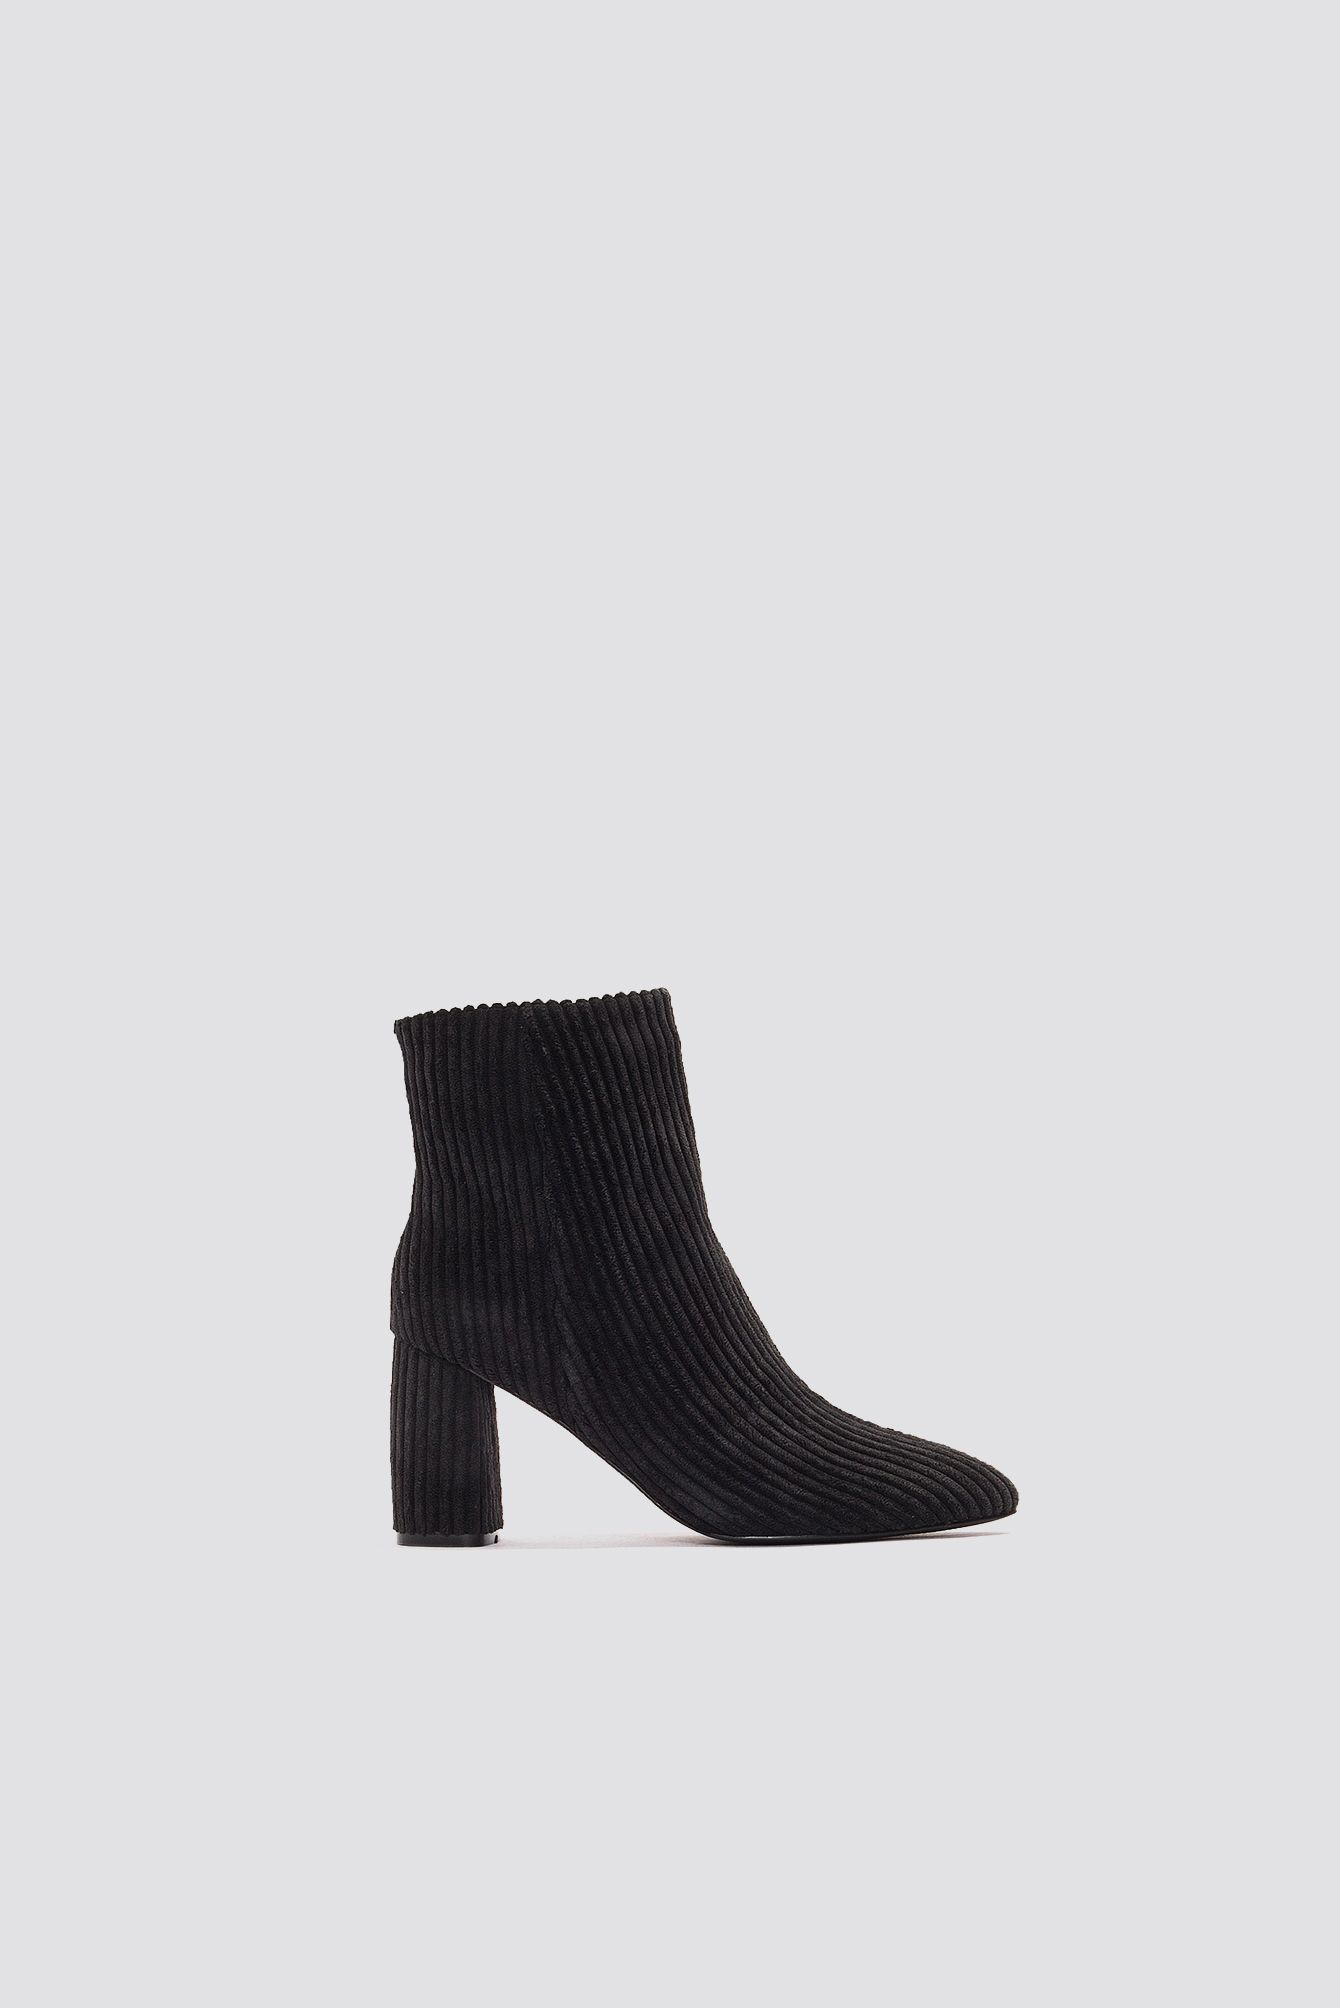 d732eebdb2a The Mid Heel Manchester Boot by NA-KD Shoes features a pointy toe